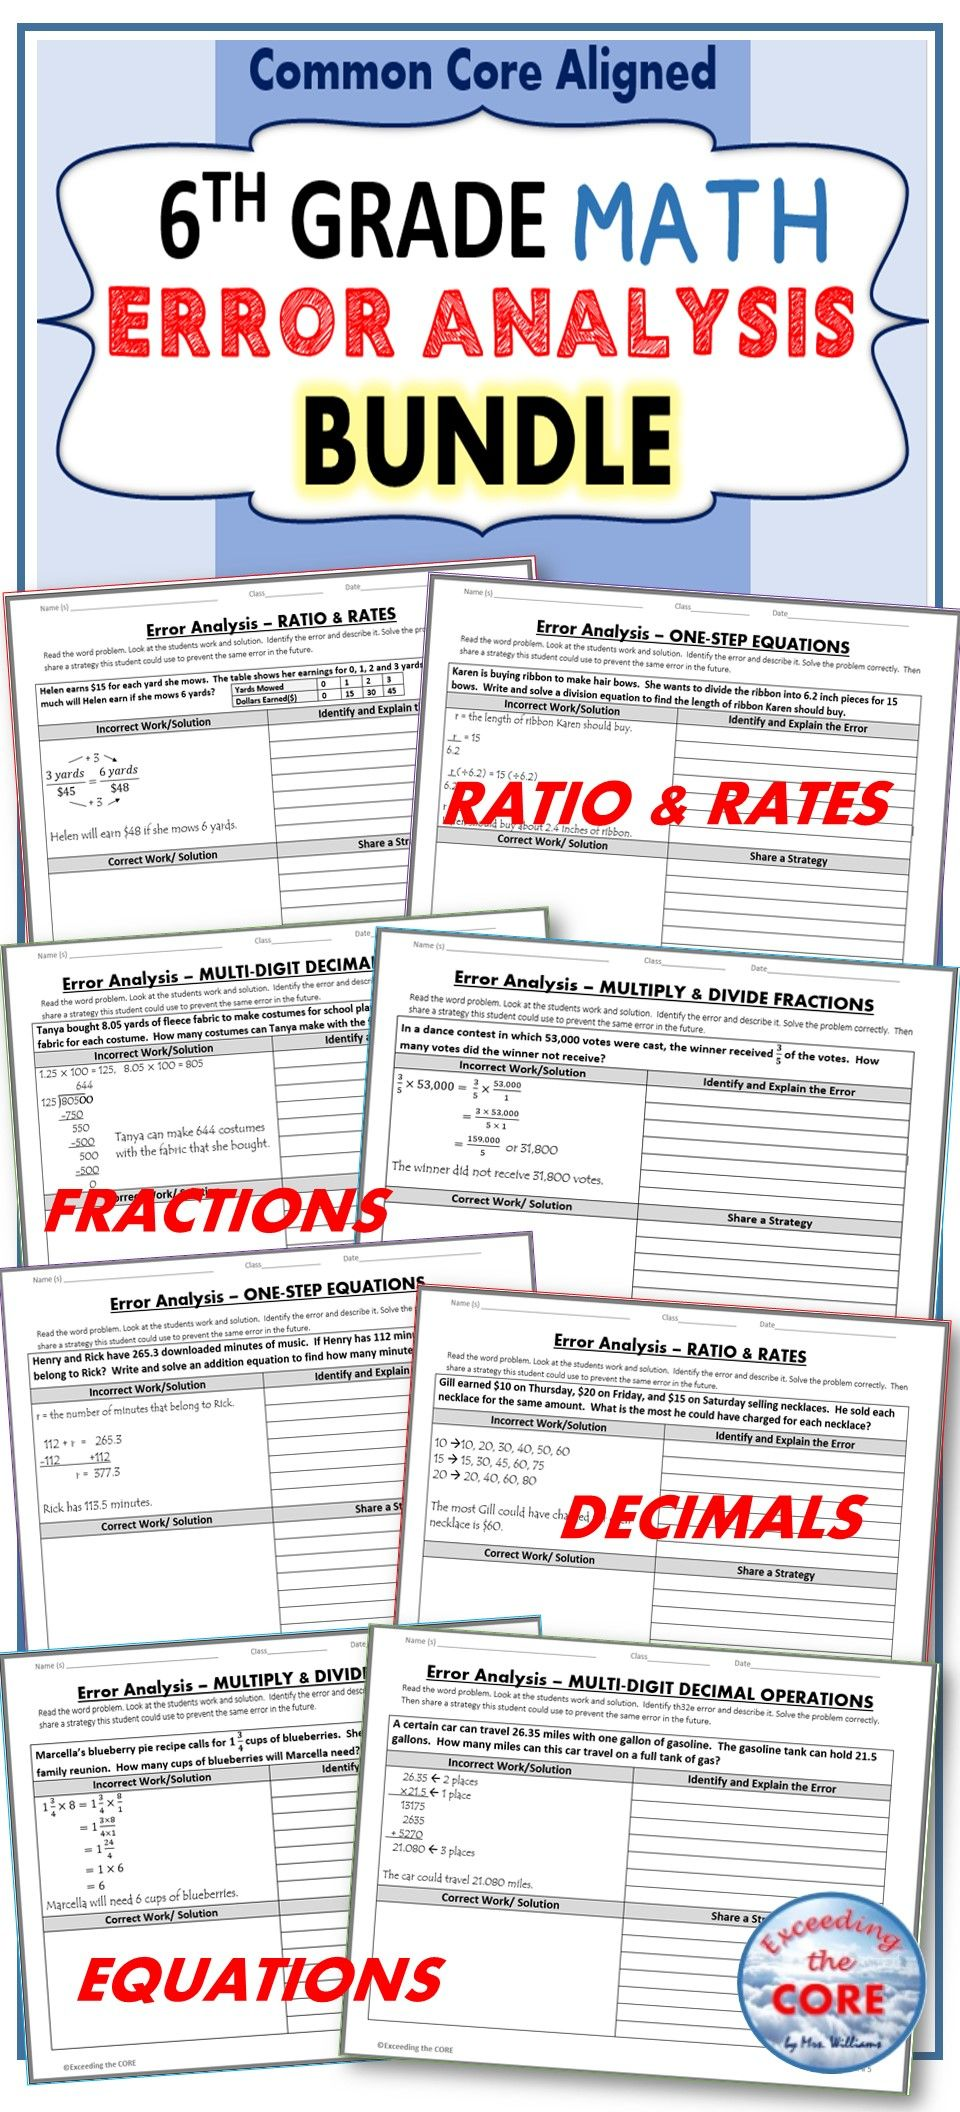 6th grade math error analysis find the error common core bundle 6th grade math error analysis common core bundle have your students apply their understanding of math concepts with these error analysis activities fandeluxe Choice Image